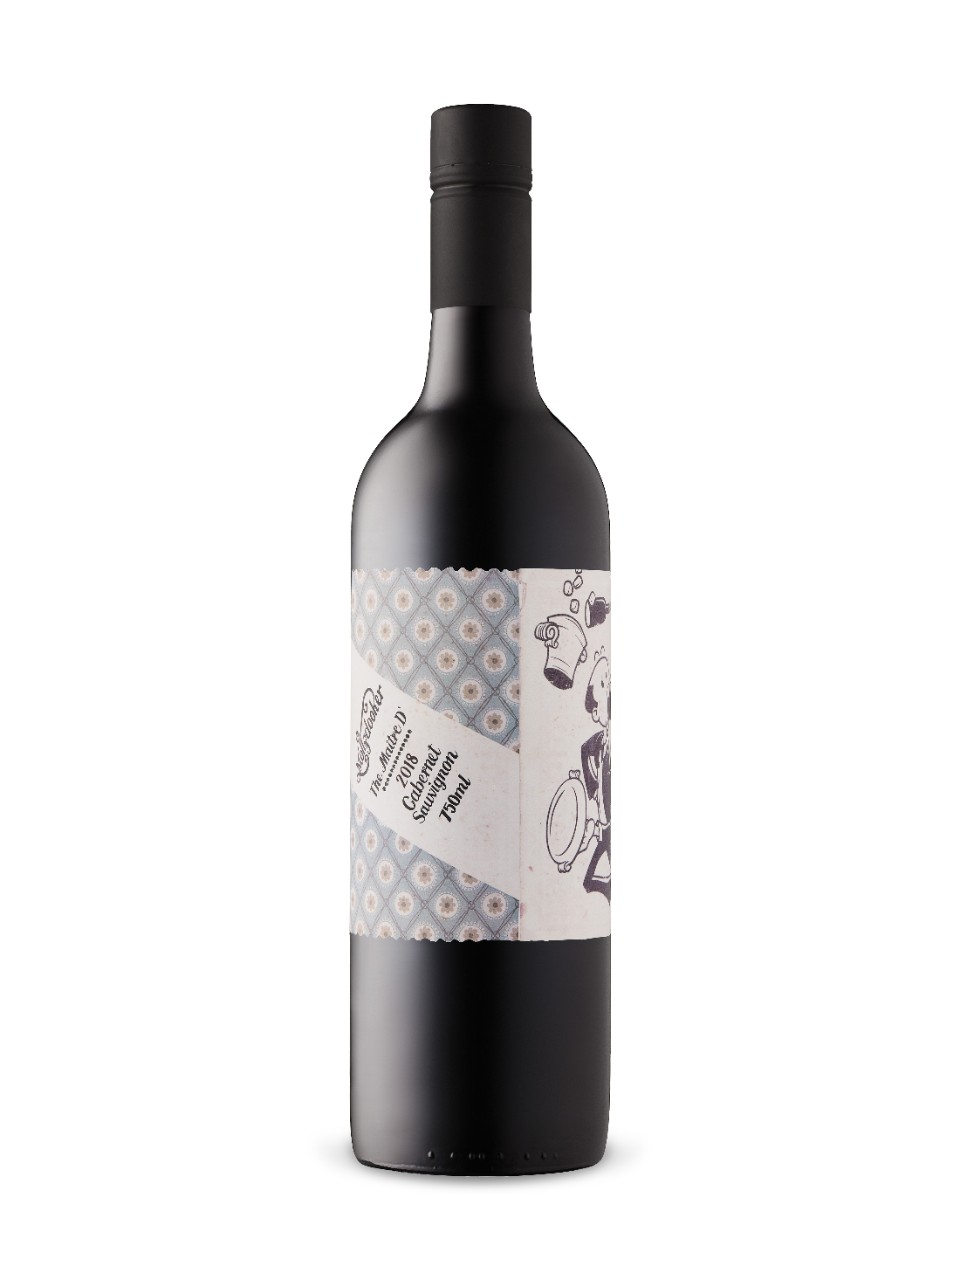 Mollydooker The Maître D' Cabernet Sauvignon 2018 from LCBO